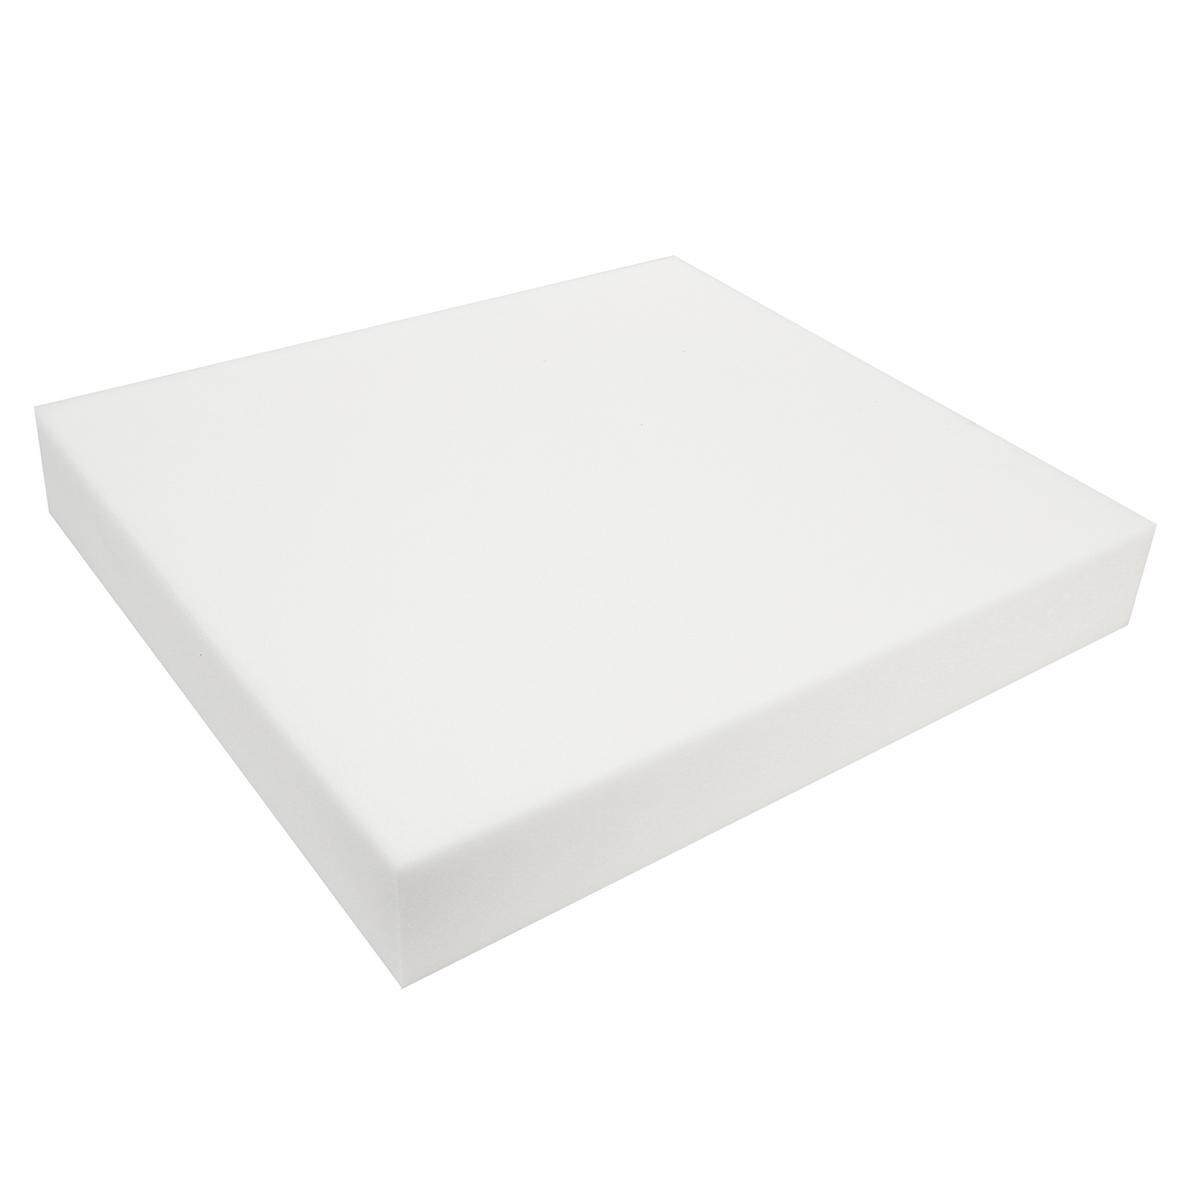 24 White Square High Density Seat Foam Sheet Upholstery Cushion Replacements # 2.5cm - intl